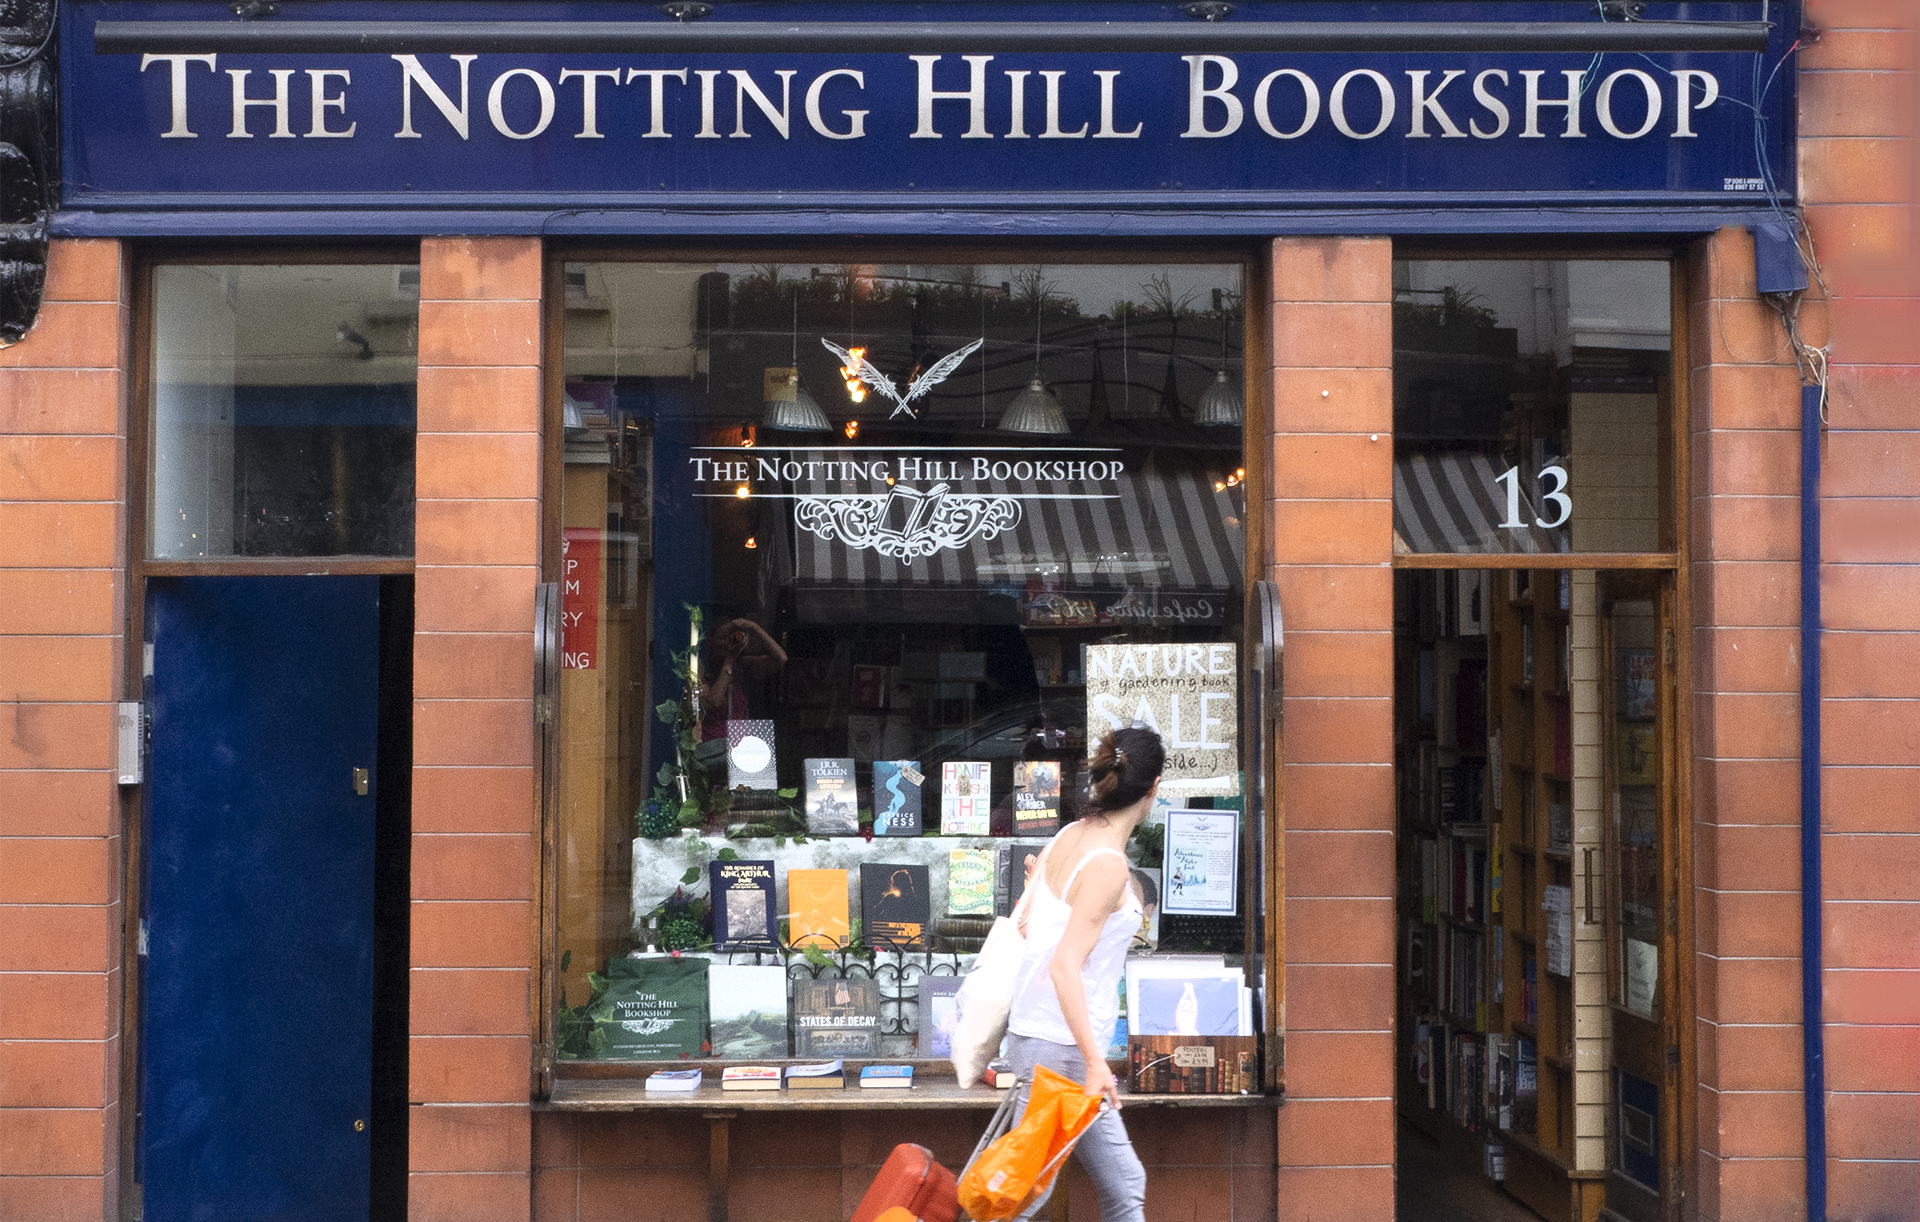 The most famous bookstore in London as seen in the movie Notting Hill with Hugh Grant and Julia Roberts. Explore more film locations through solo travel.